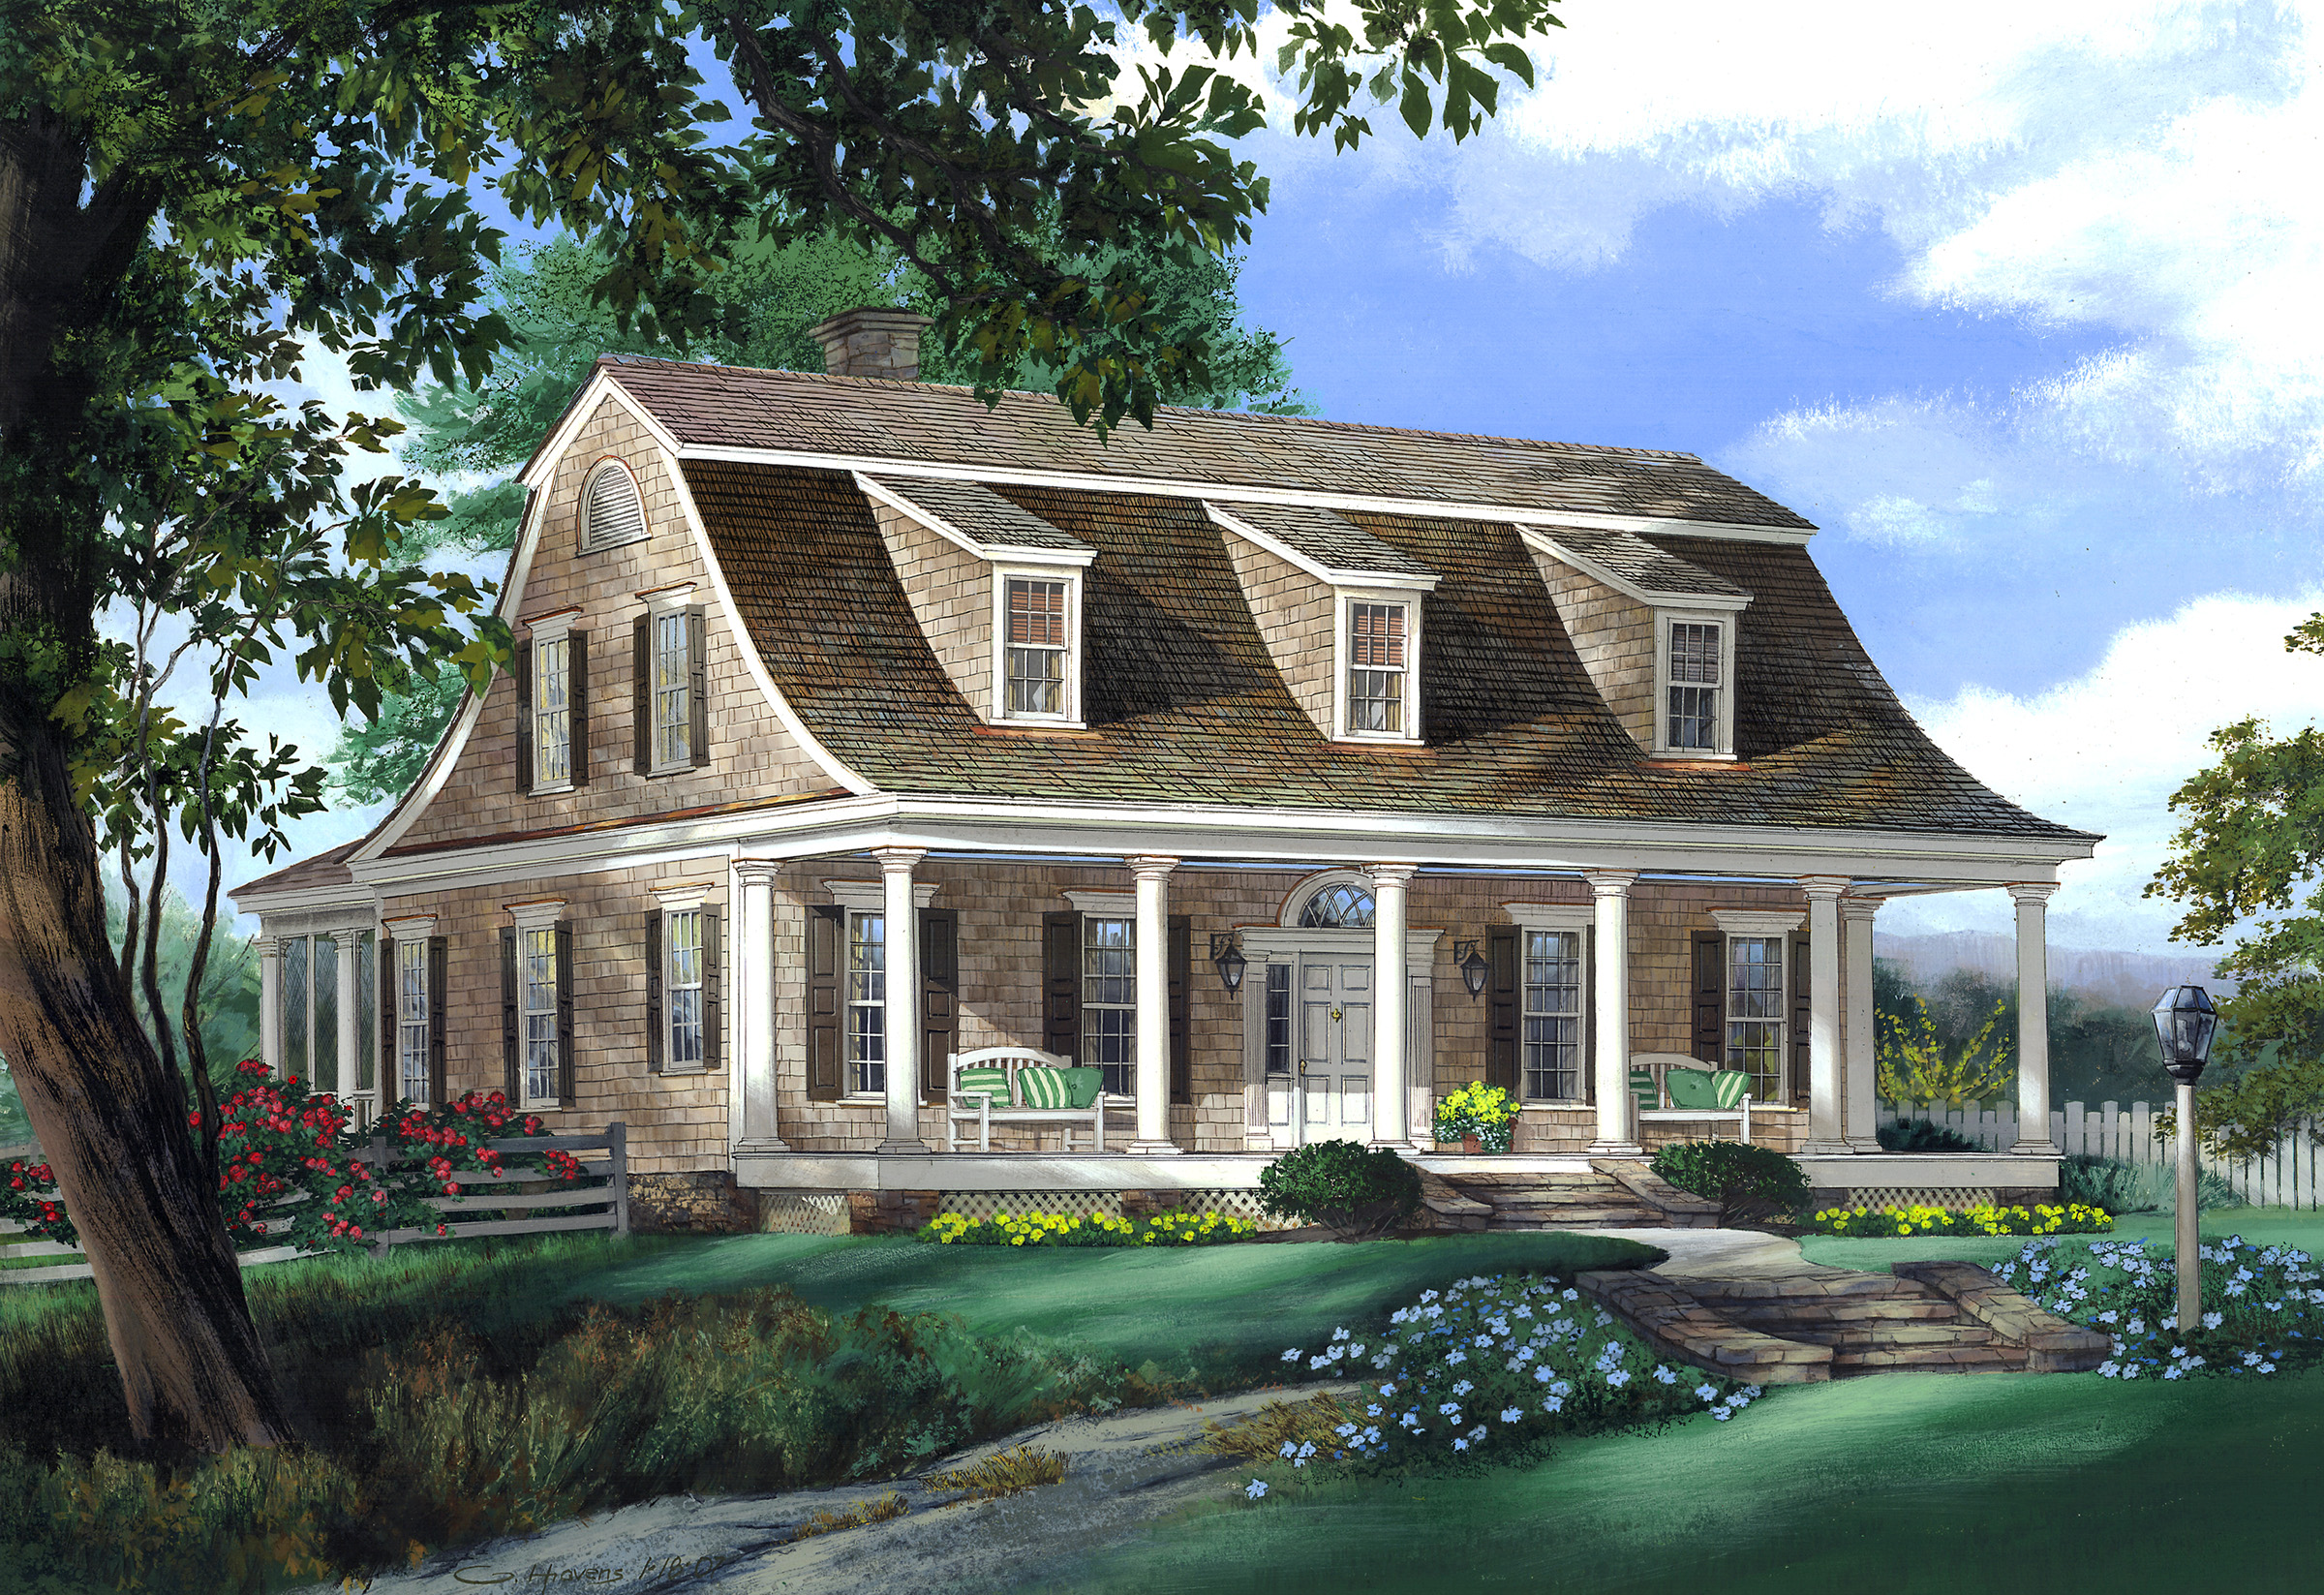 Gambrel roof with sloped dormers. The bottom of the gambrel flares outward with a slight bow.